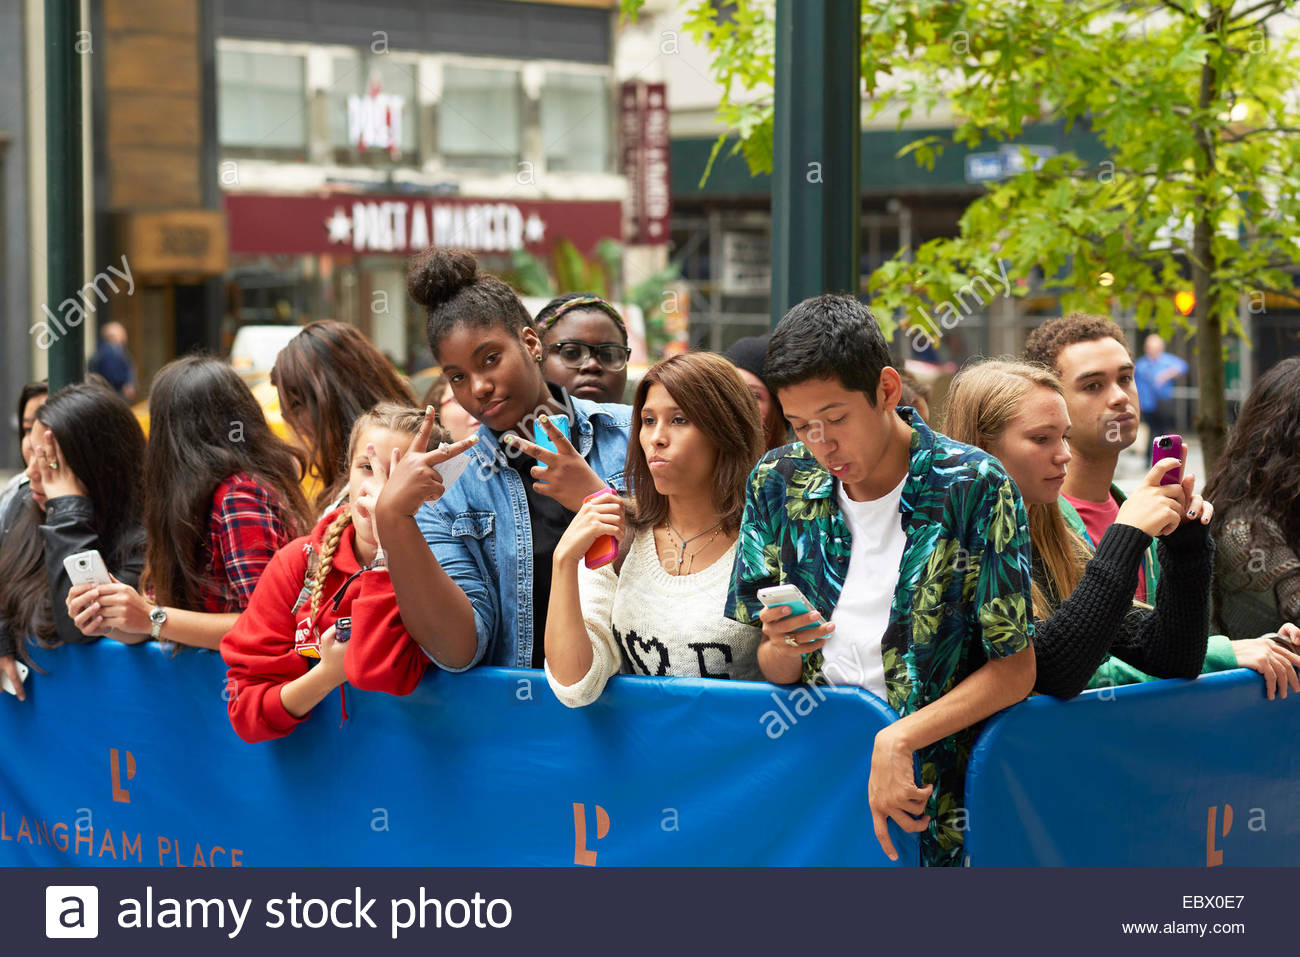 Fans taking pictures with cell phone behind barrier stock photo - Young Girl Fans Behind Barrier Chasing Pop Stars On The Streets Of Manhattan New York